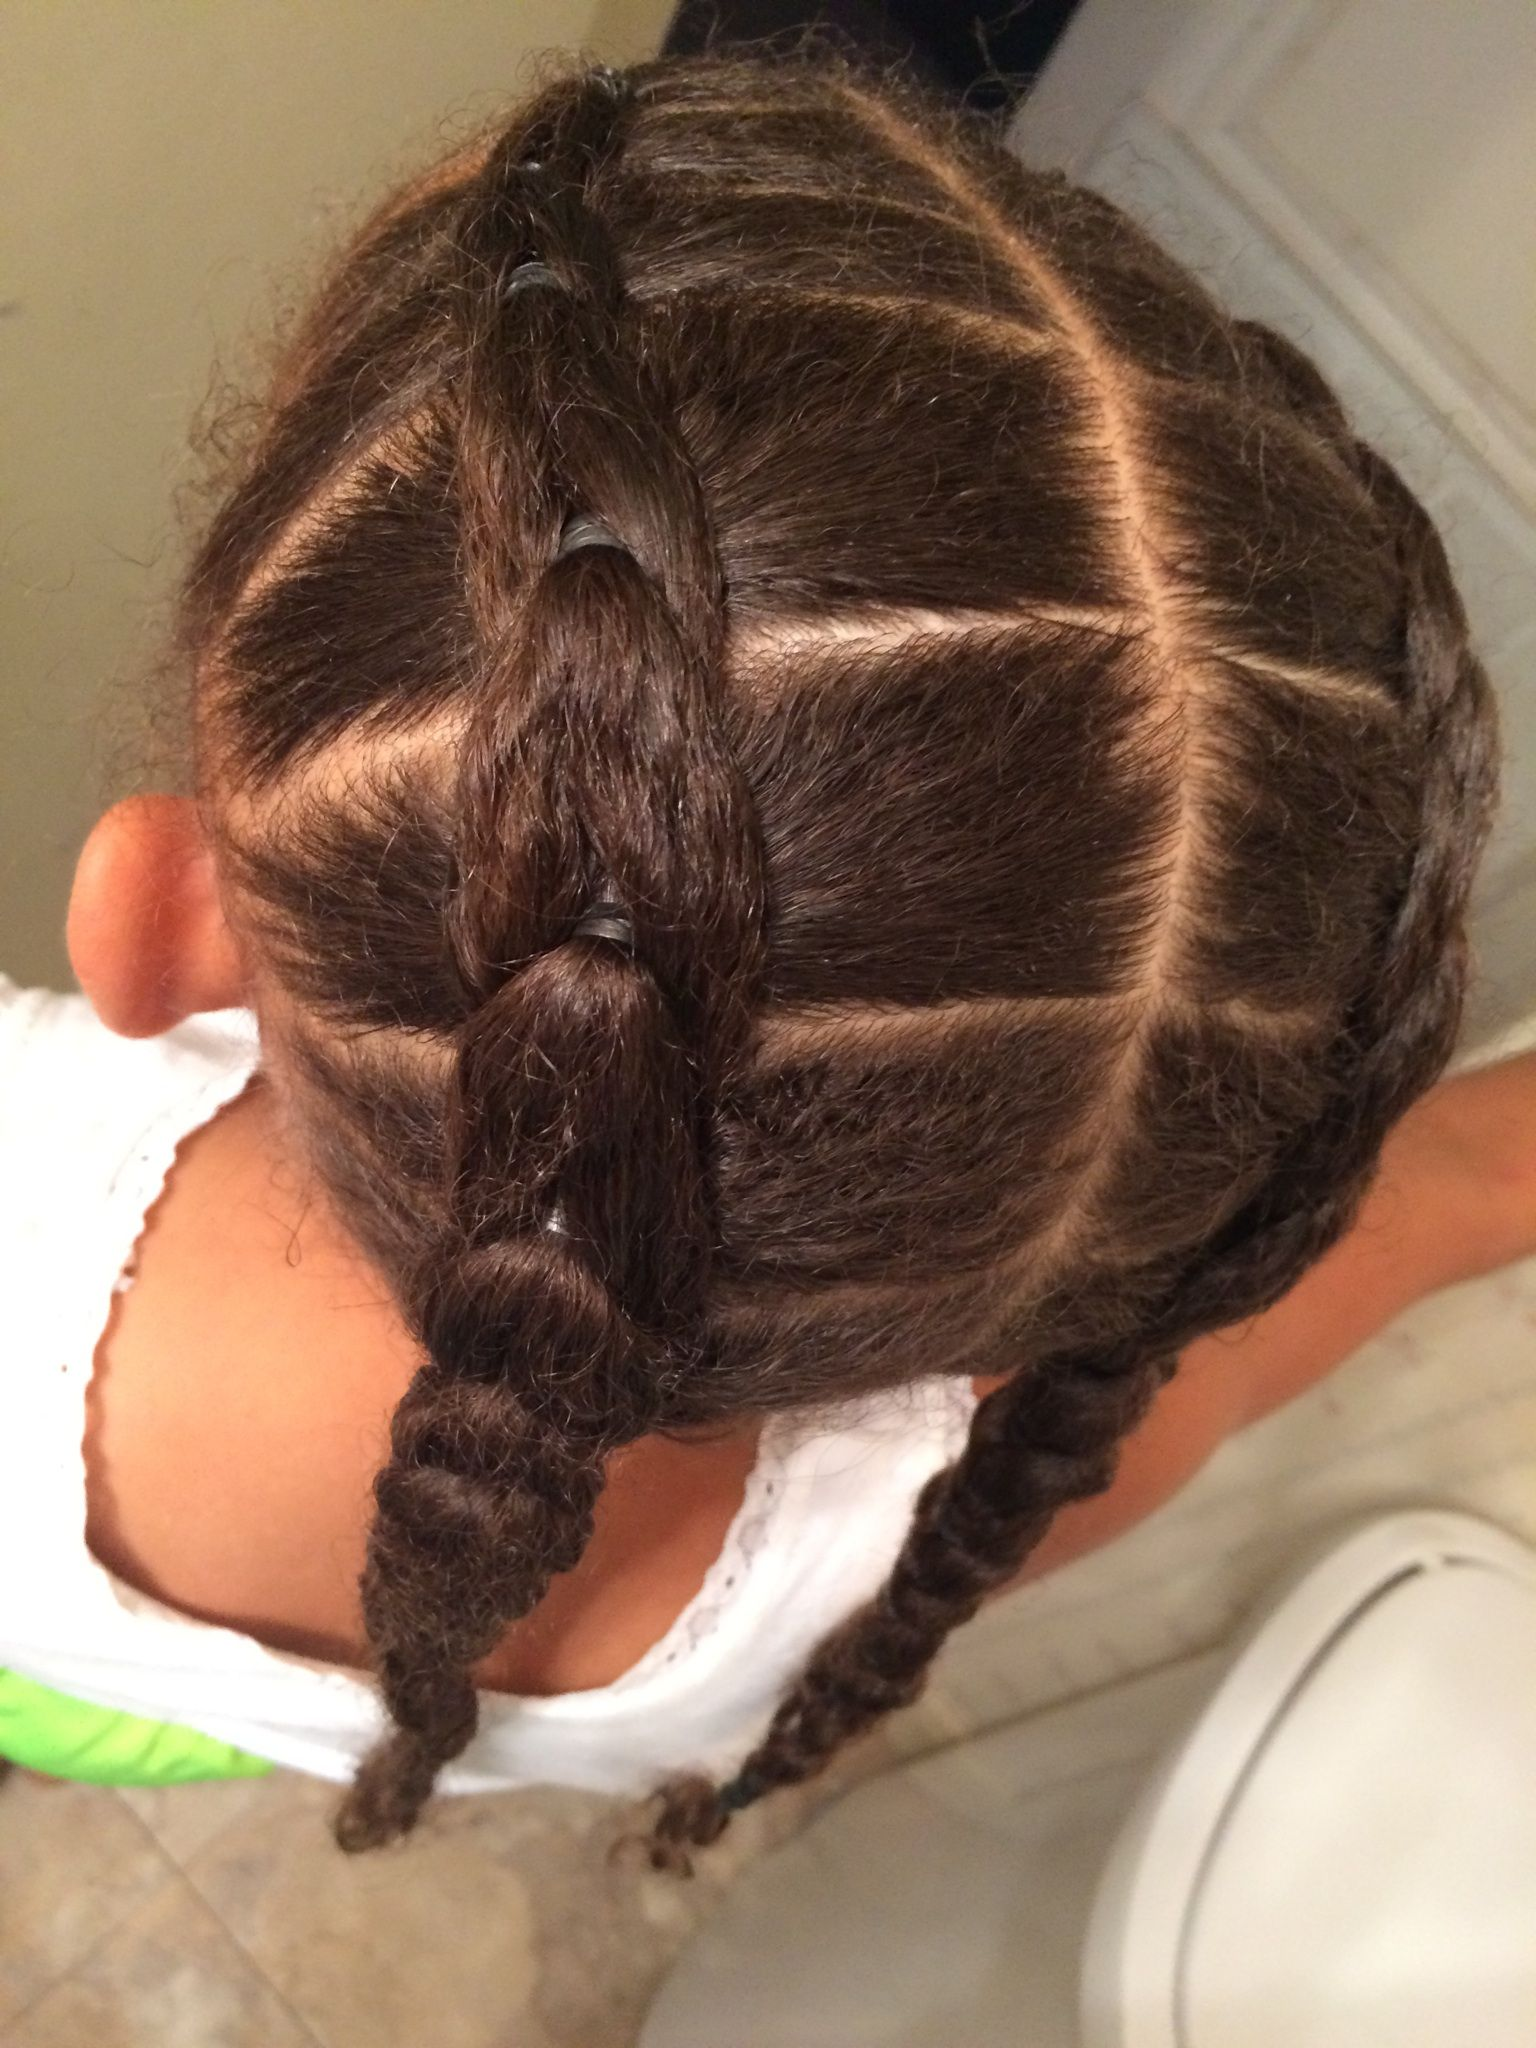 Kids Hairstyles Mixed Girl Hair Mixed Girl Hairstyles Toddler Hair Baby Hairstyles